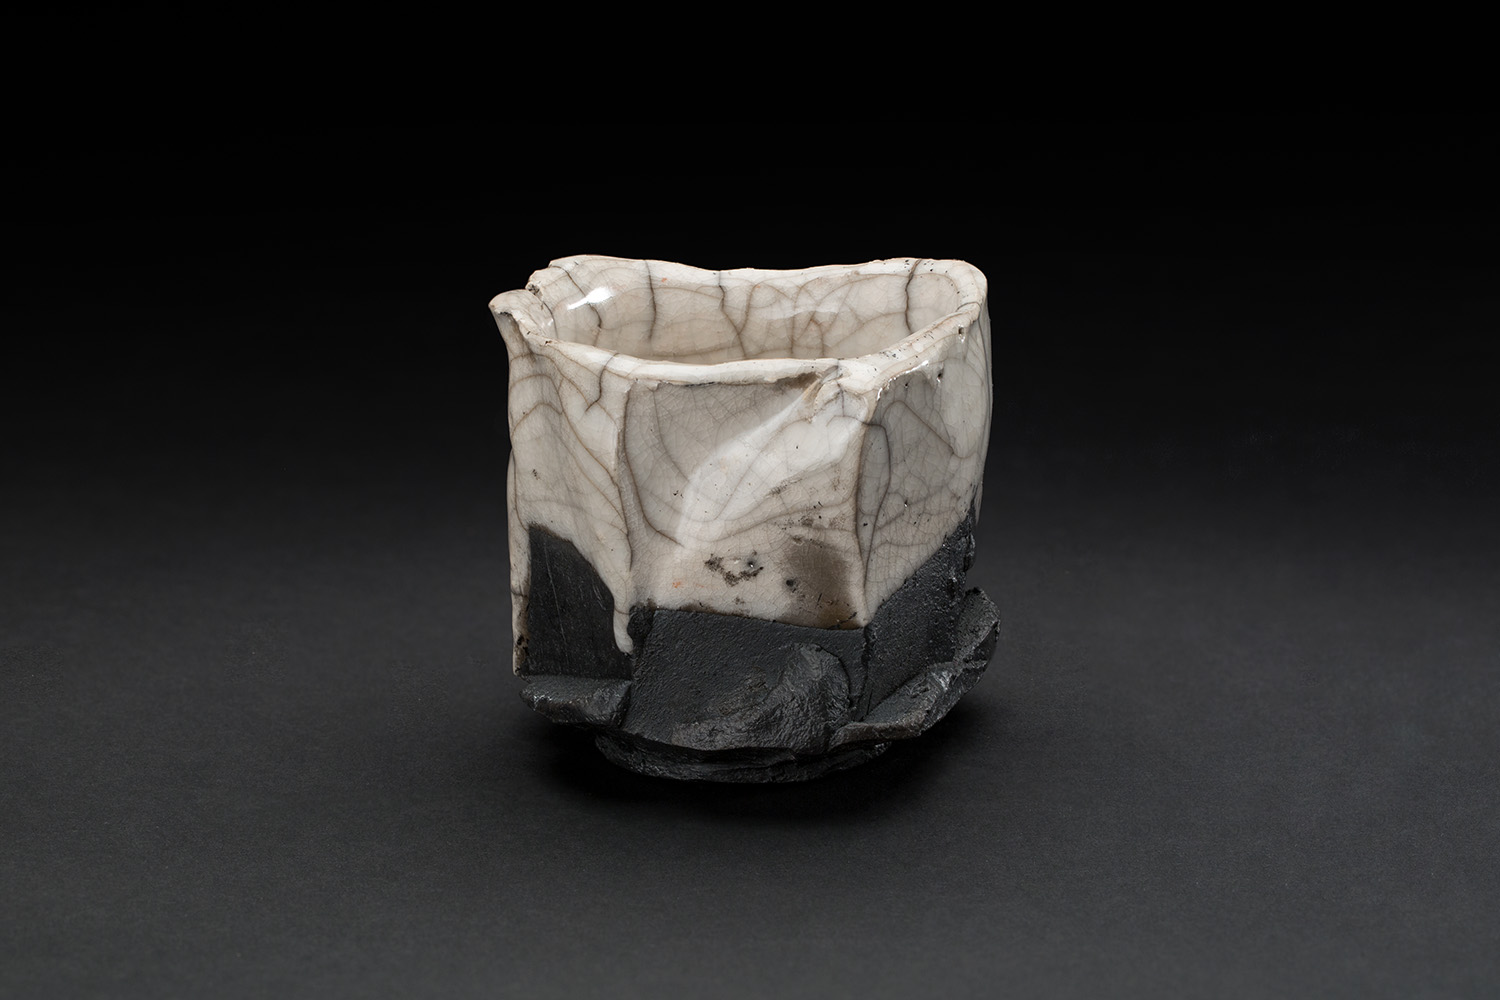 Chris Rond  Duo  , 2018 Ceramic 3 x 3 x 3 inches 7.6 x 7.6 x 7.6 cm CRo 4